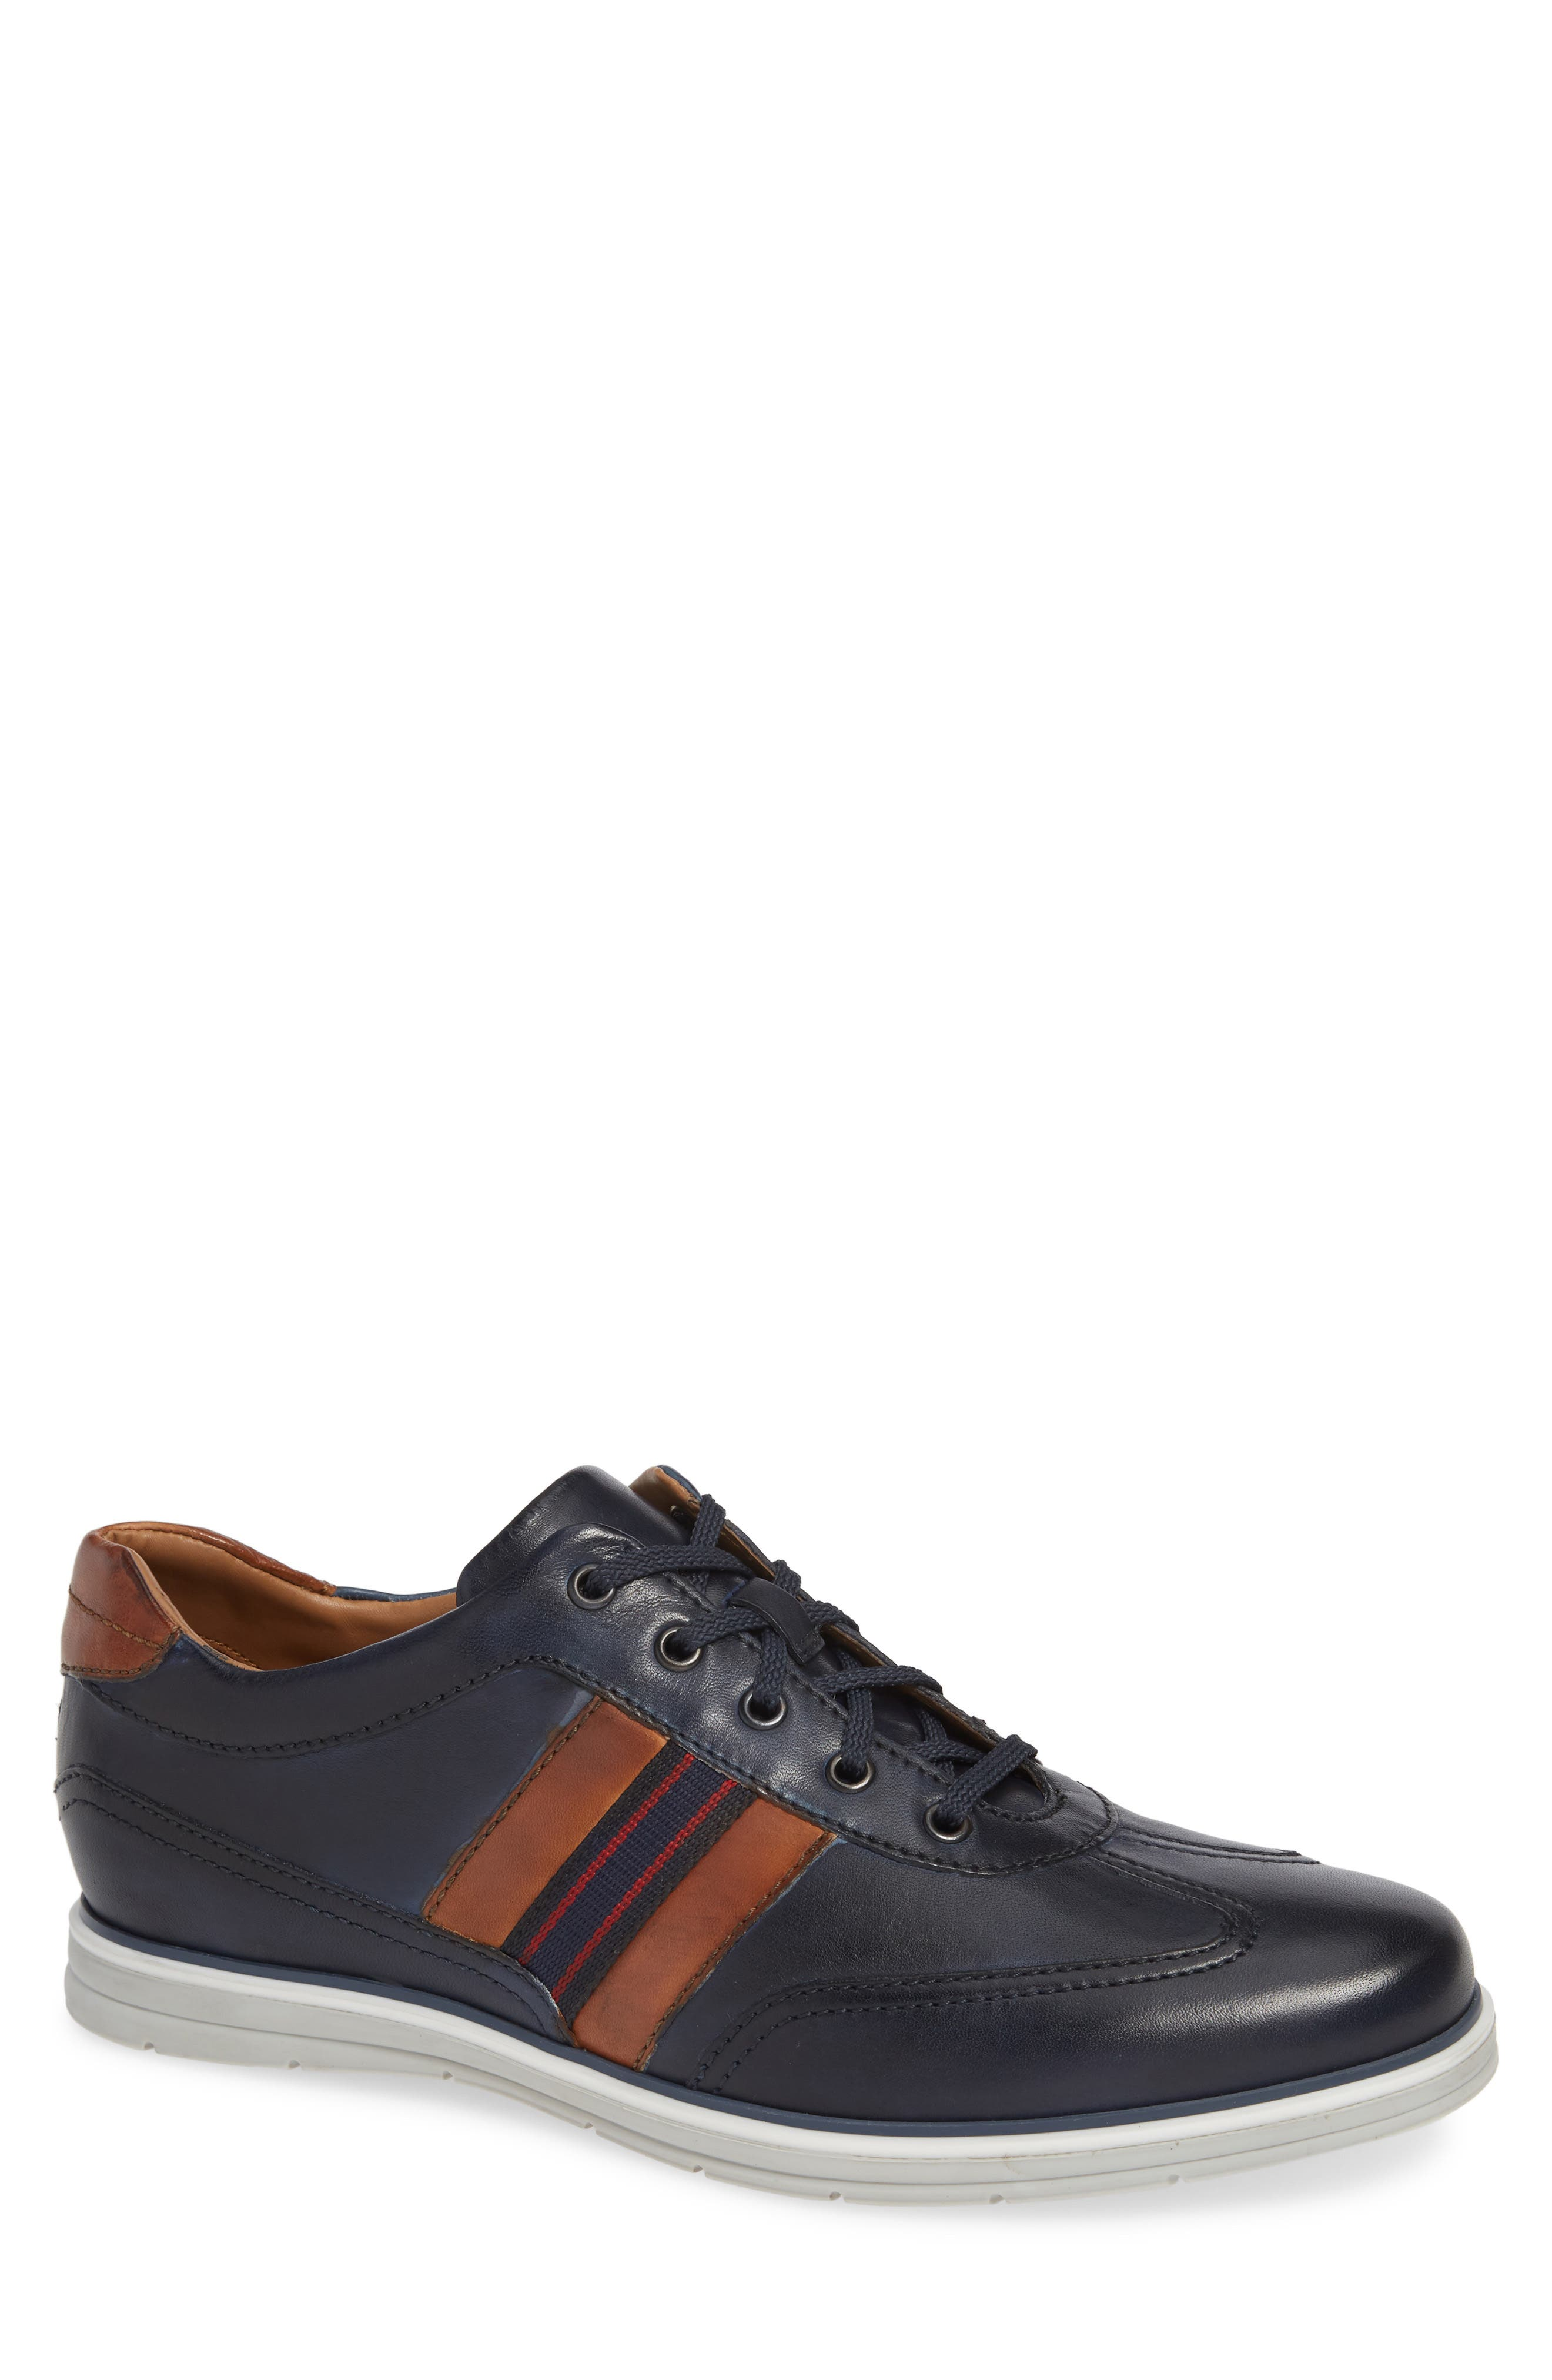 Mens Vintage Style Shoes & Boots| Retro Classic Shoes Mens Robert Talbott Turbo Low Top Sneaker $295.00 AT vintagedancer.com